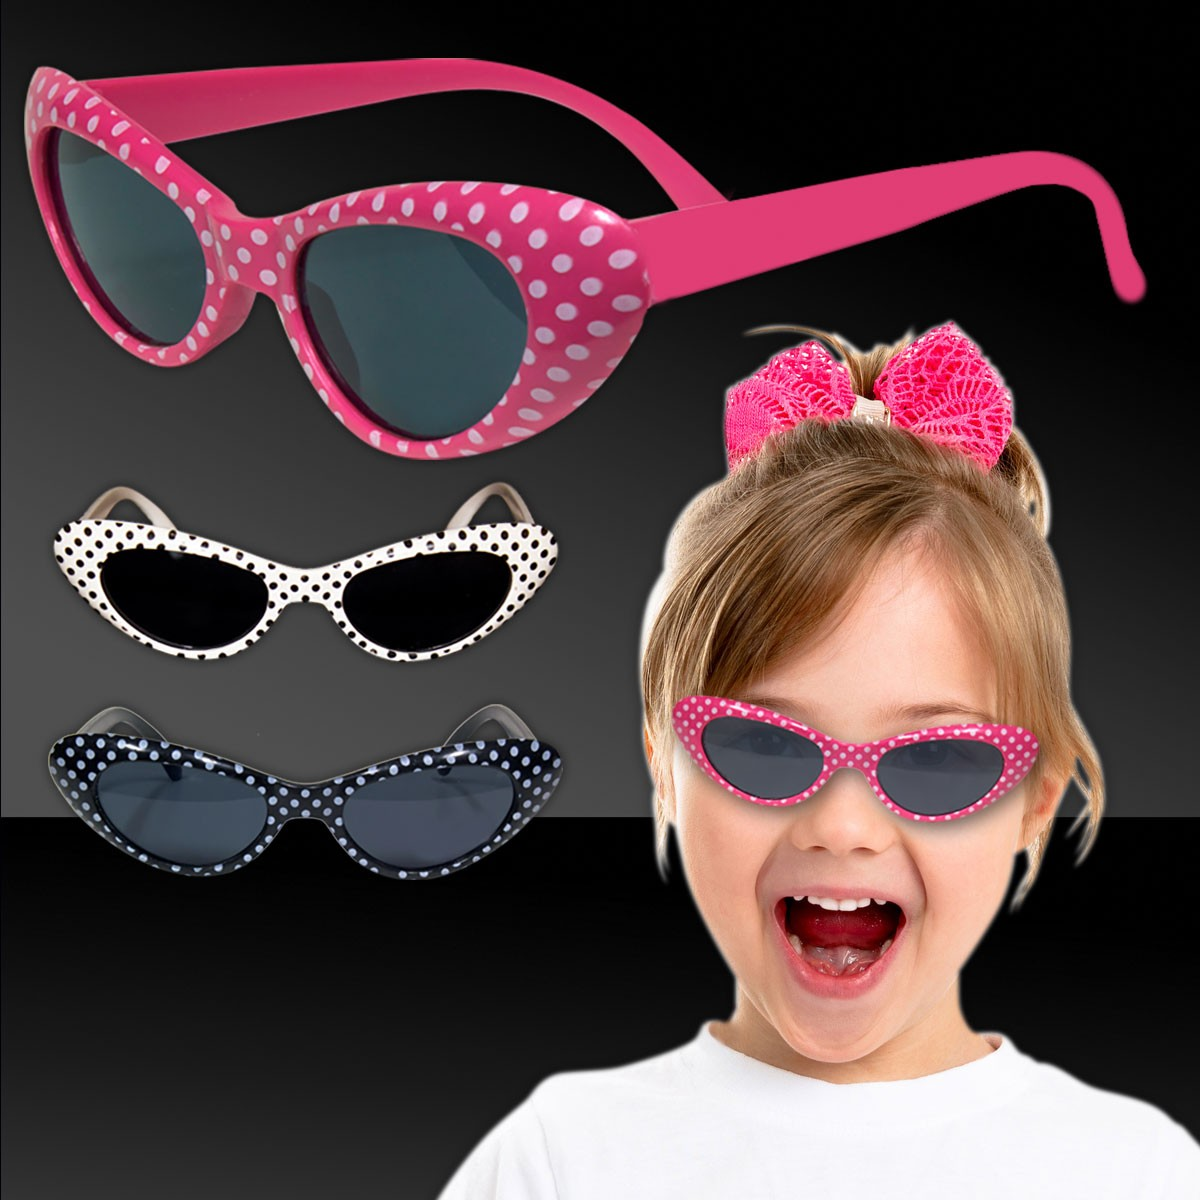 ASSORTED POLKA DOT KIDS' SUNGLASSES